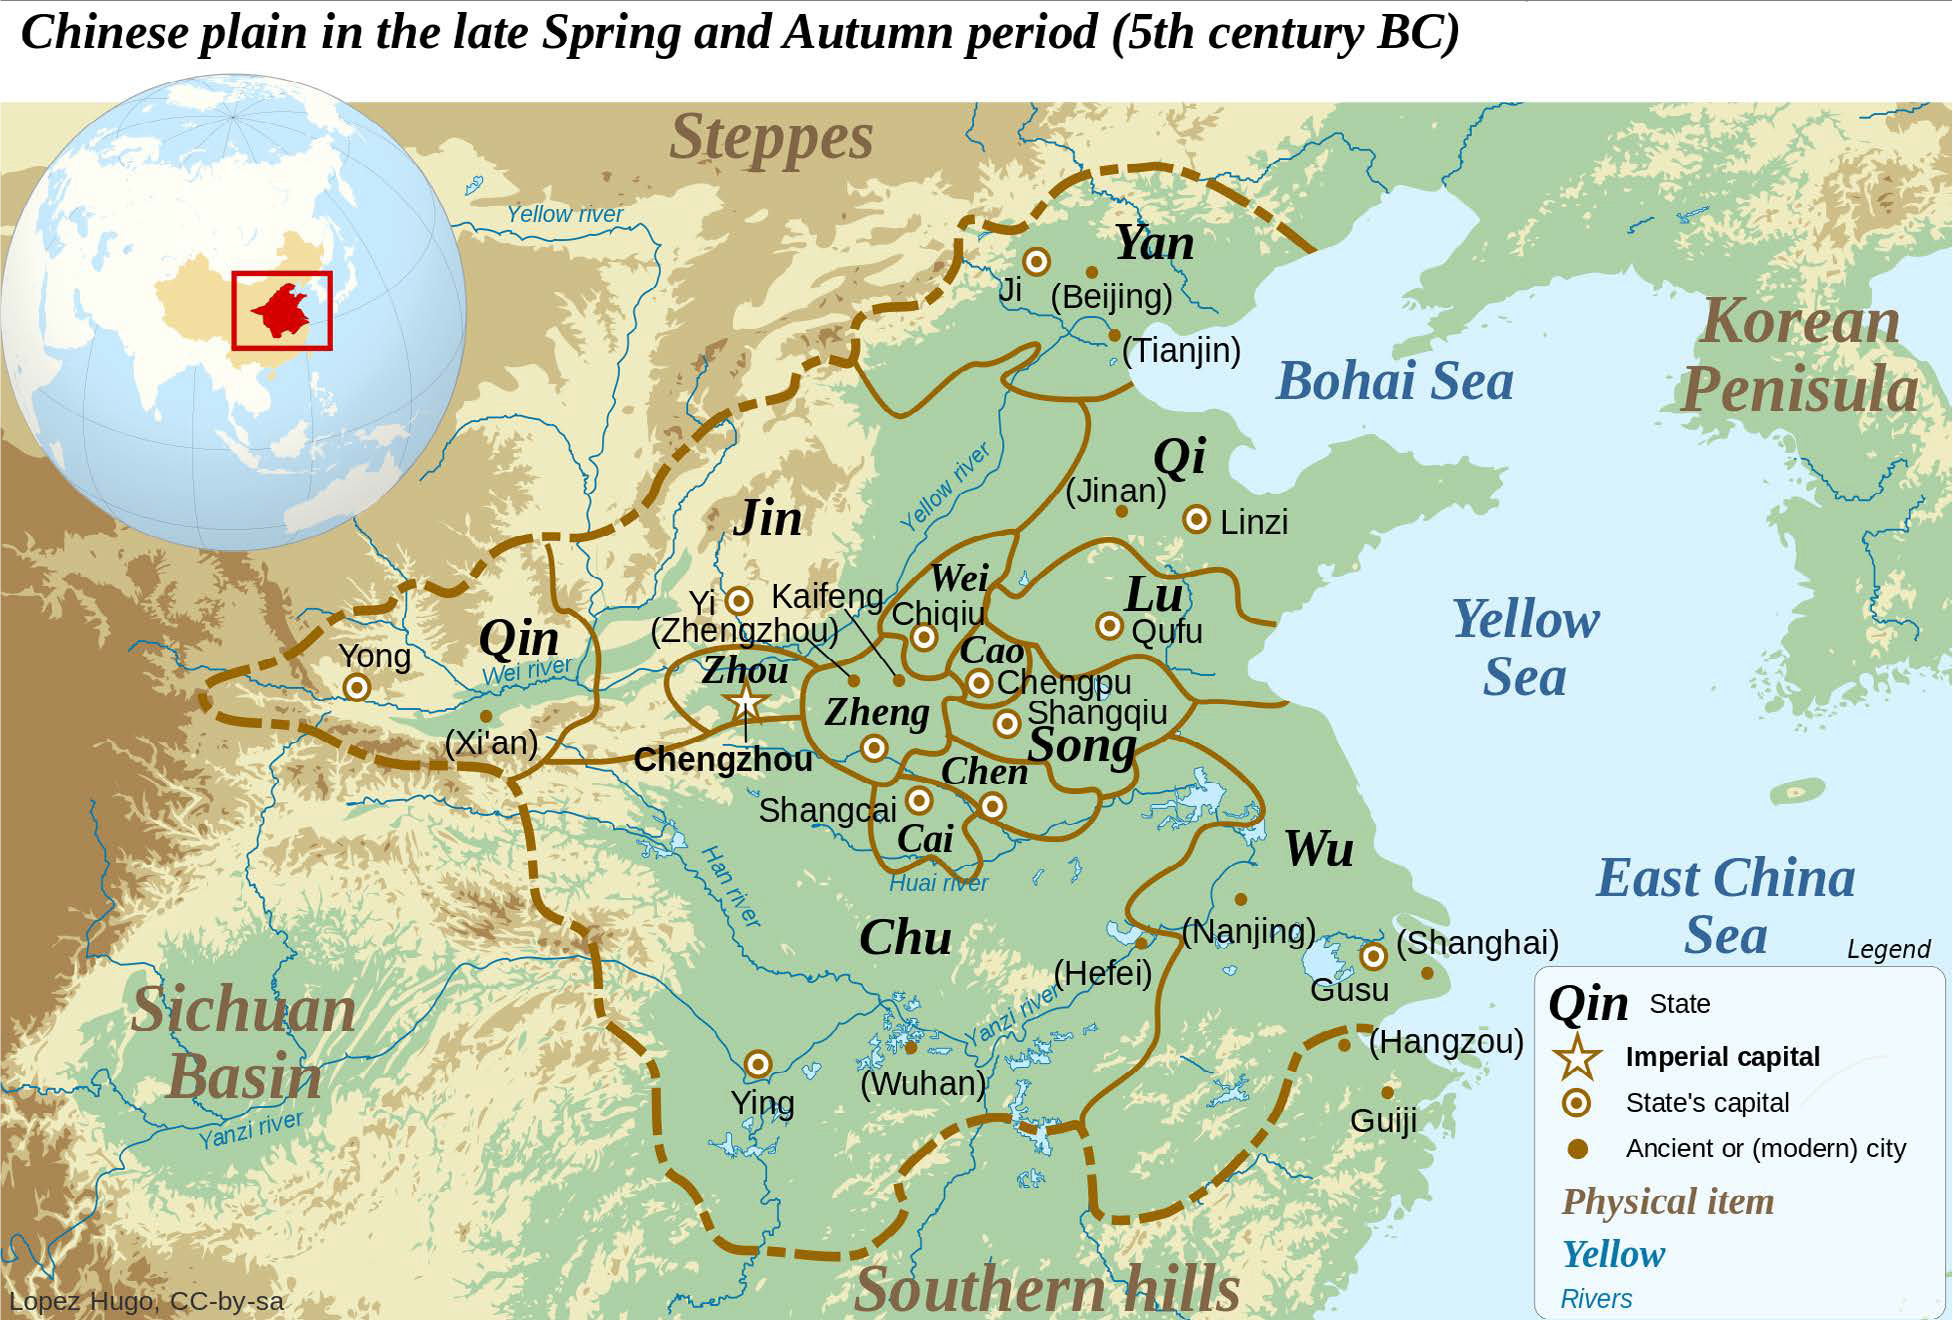 History of china and east asia to the ming dynasty map 47 eastern zhou states fifth century map of the eastern zhou states as they looked during the fifth century bce the zhou kingdom itself had sciox Gallery